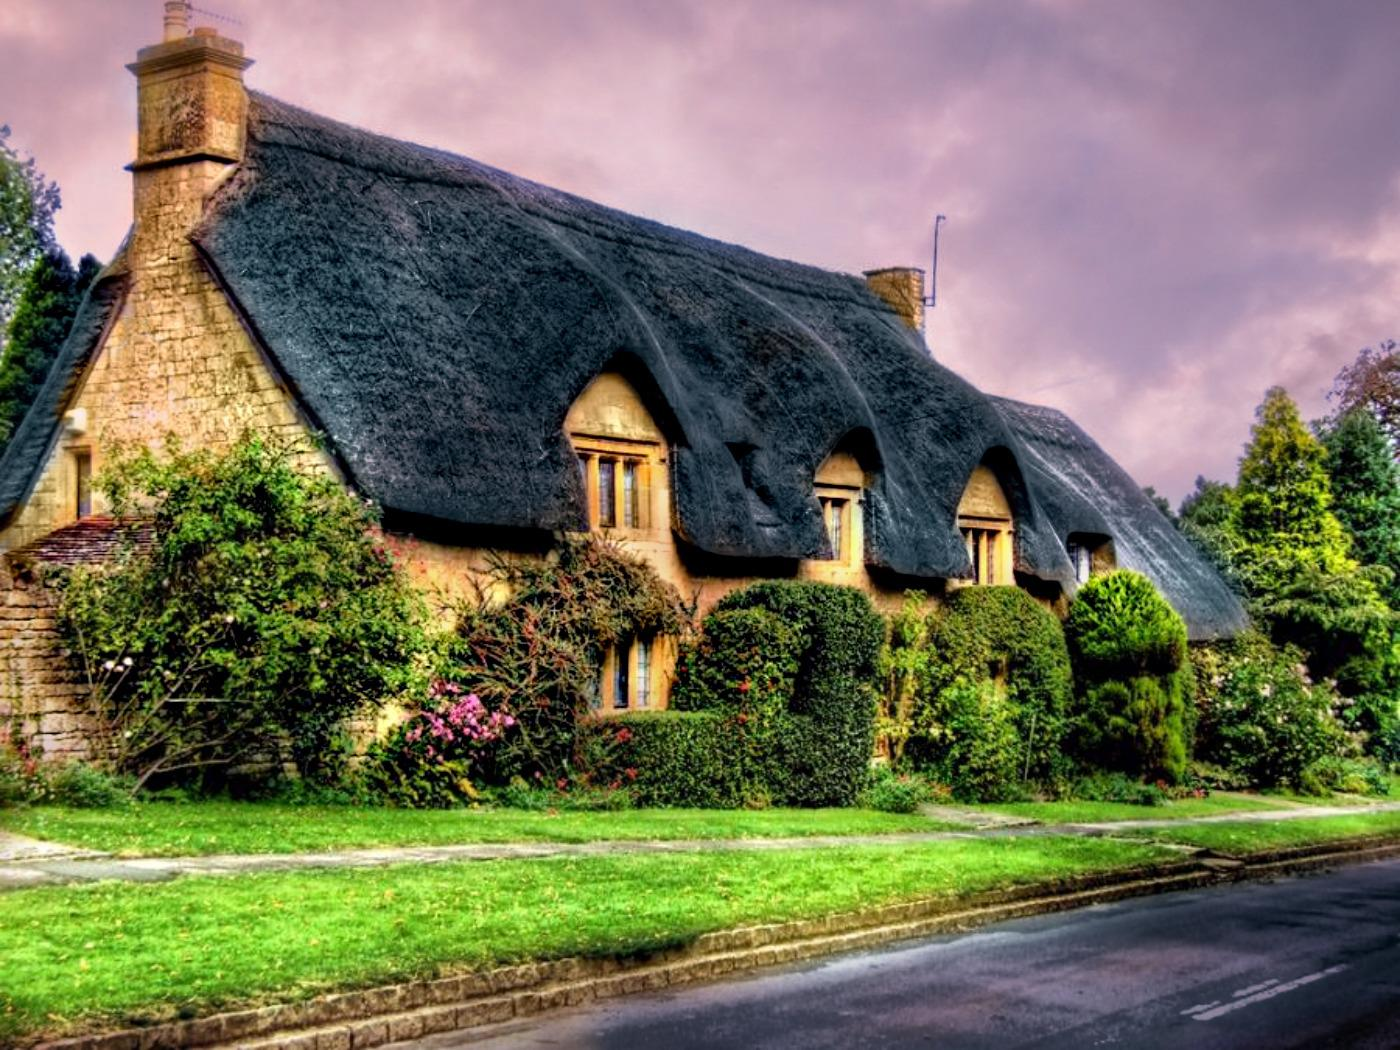 English cottage   131049   High Quality and Resolution Wallpapers 1400x1050